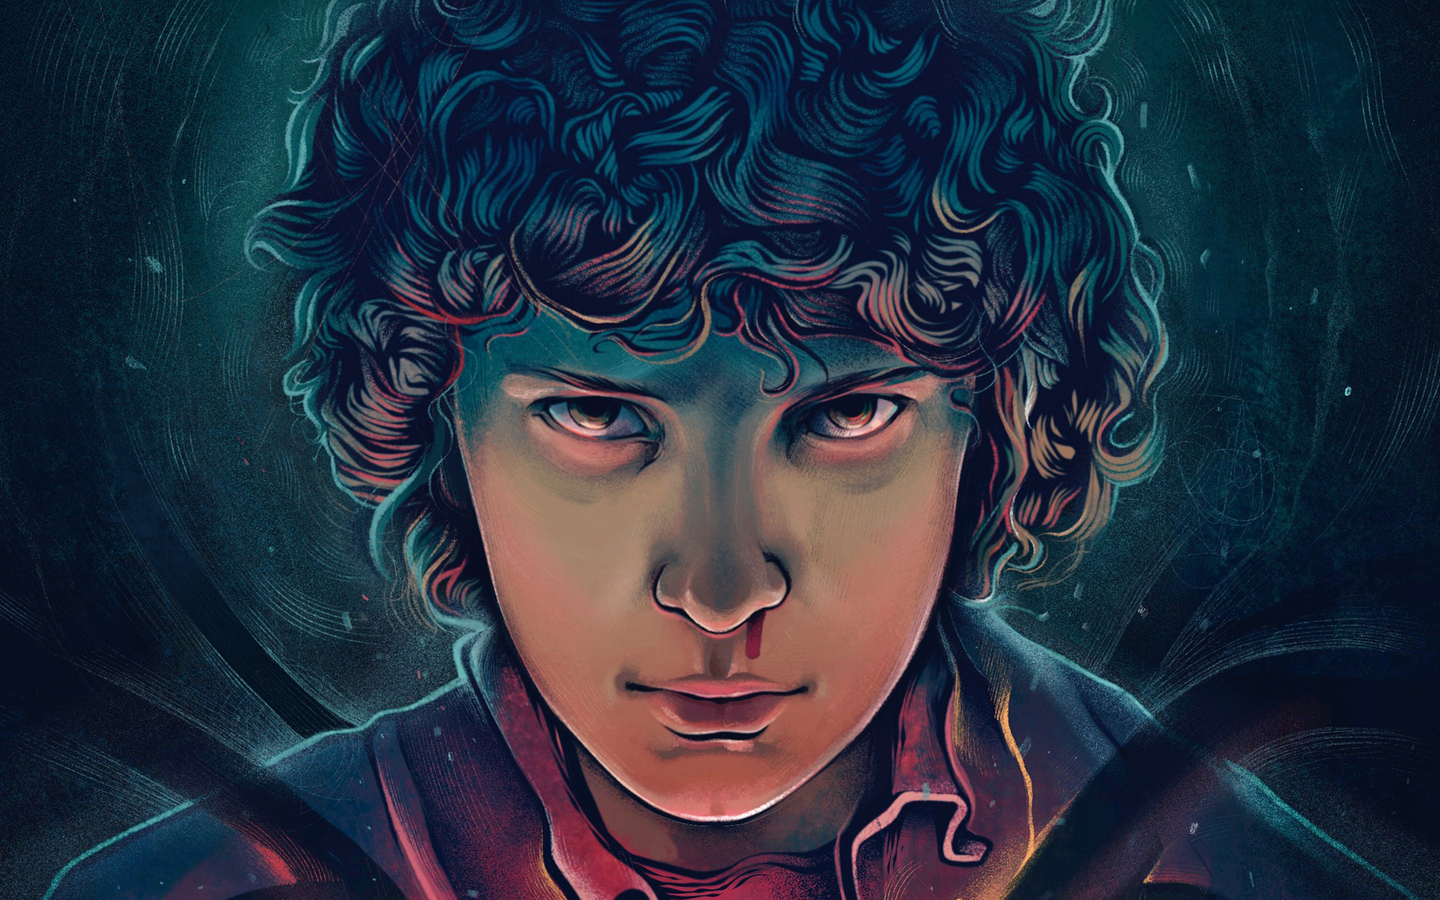 stranger-things-season-3-2019-eleven-art-6o.jpg